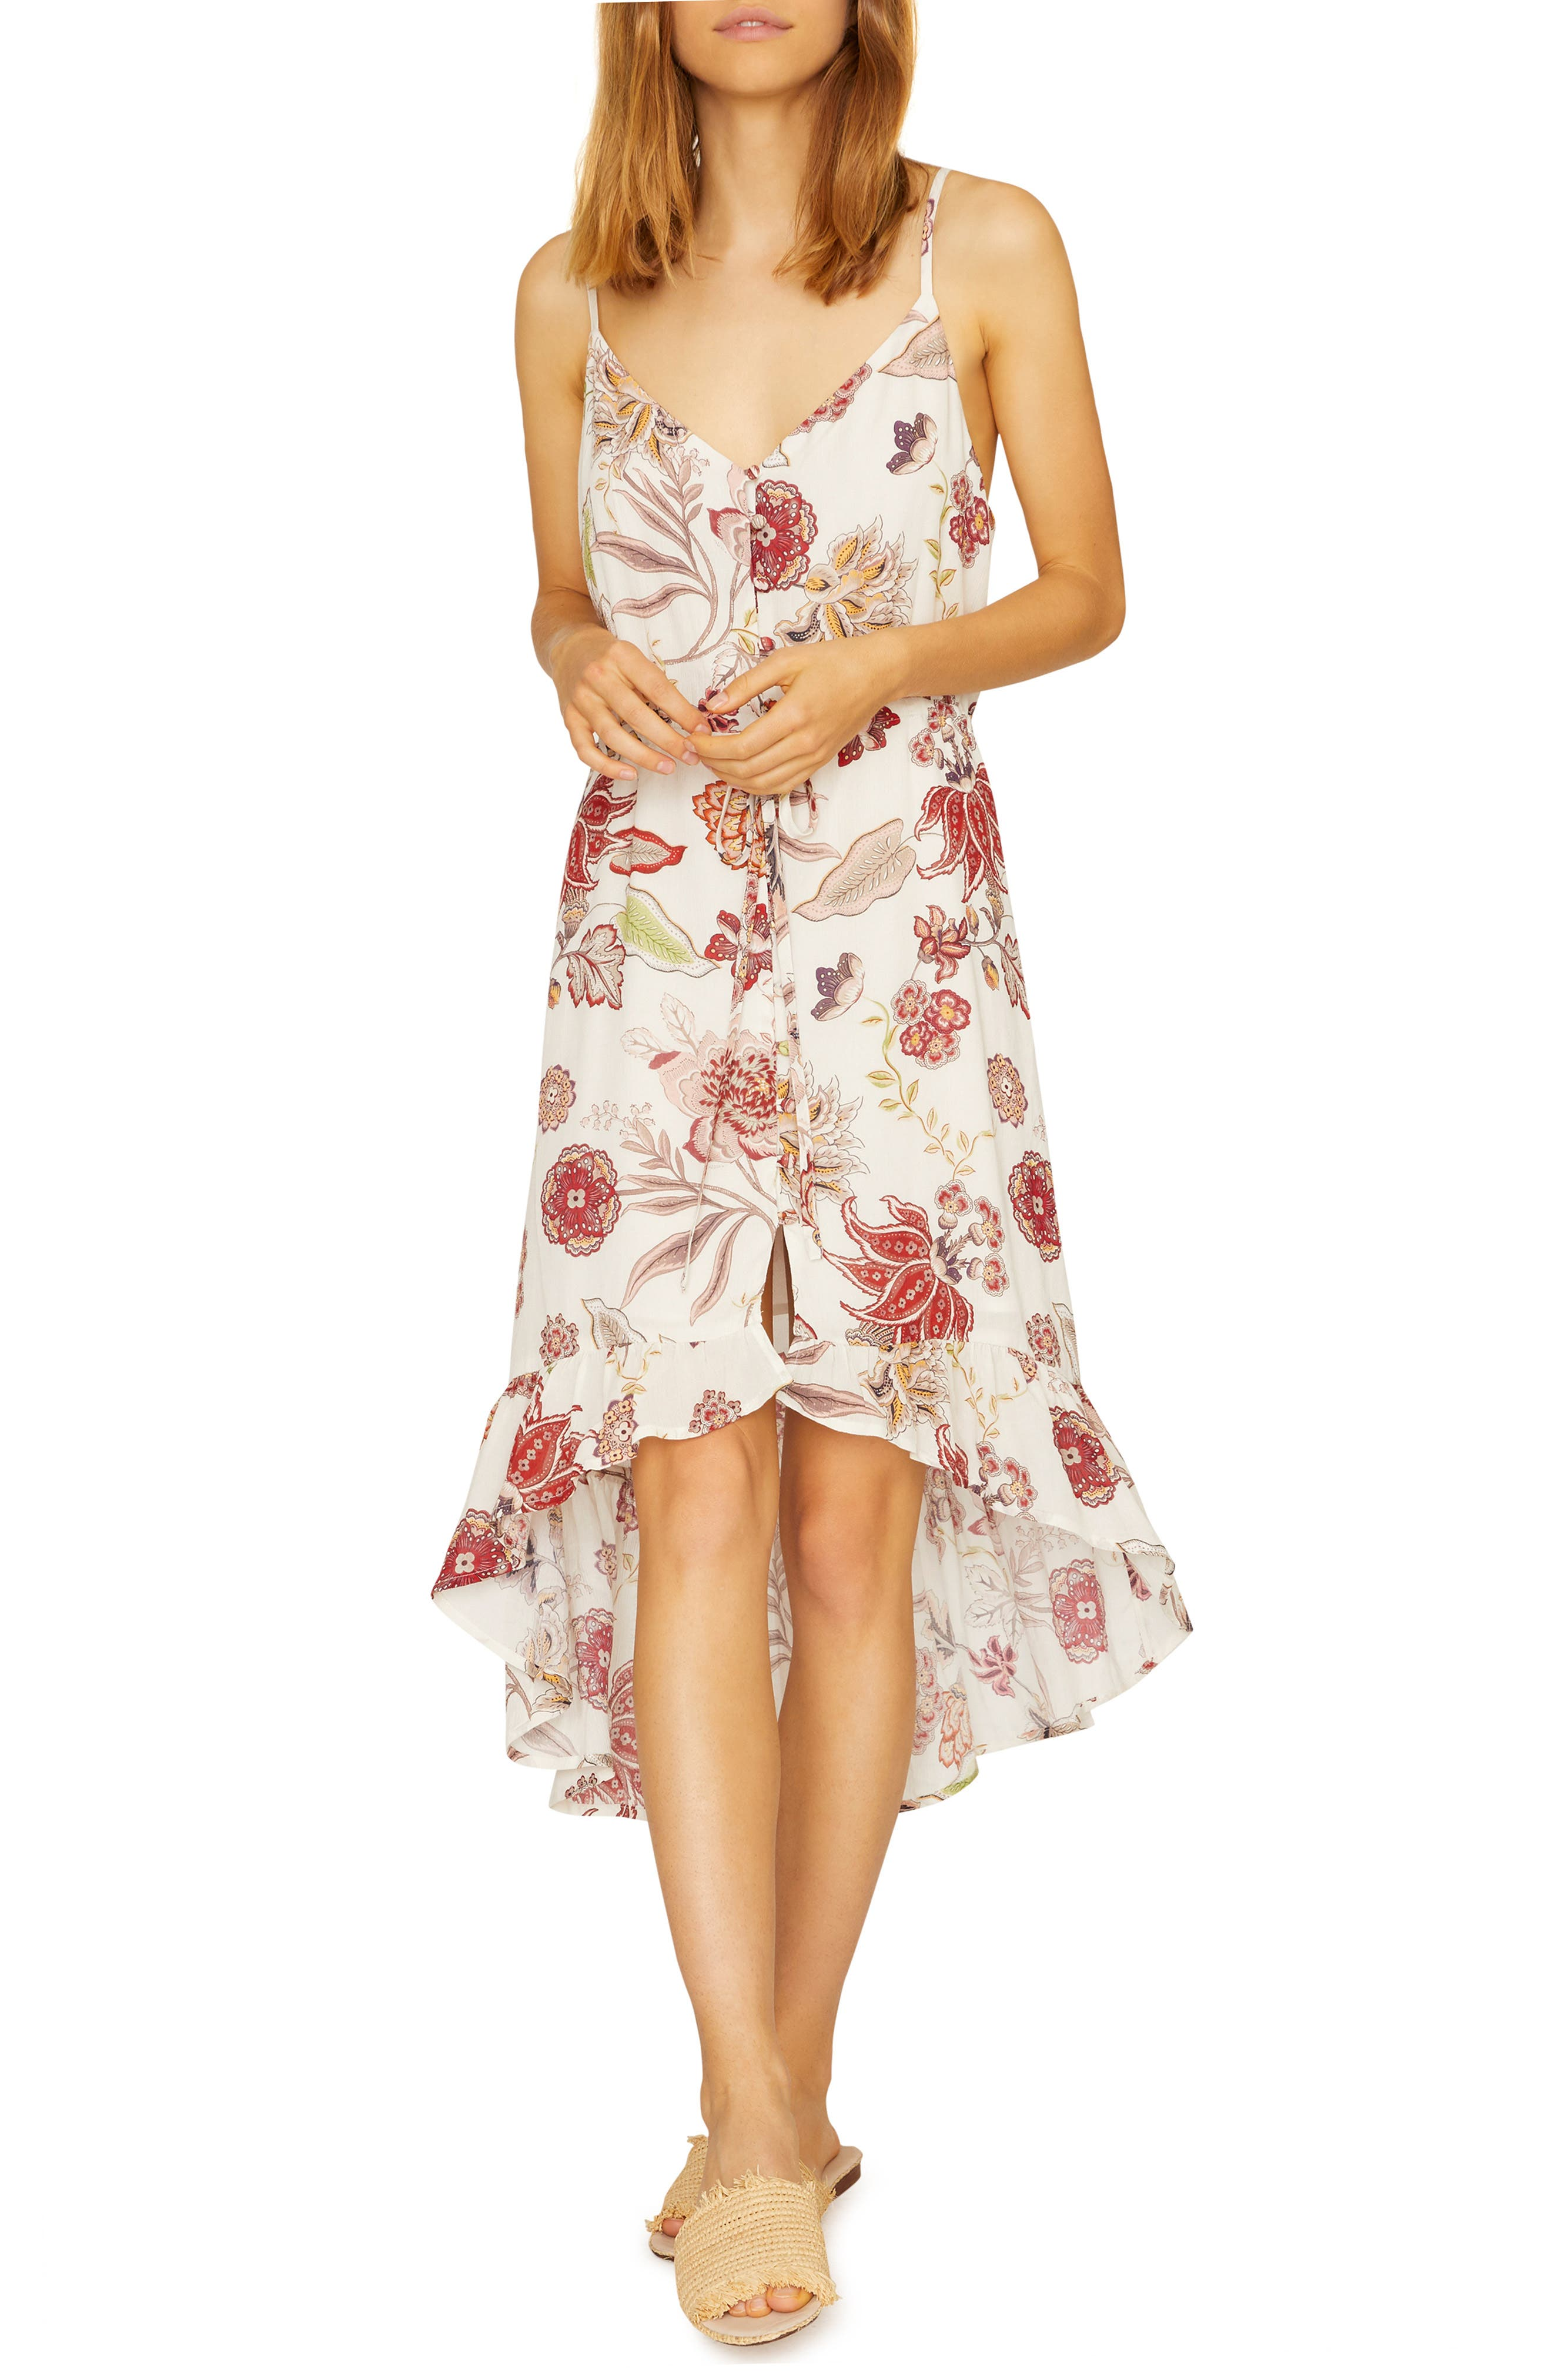 Sanctuary Palm Springs High/low Dress, Ivory